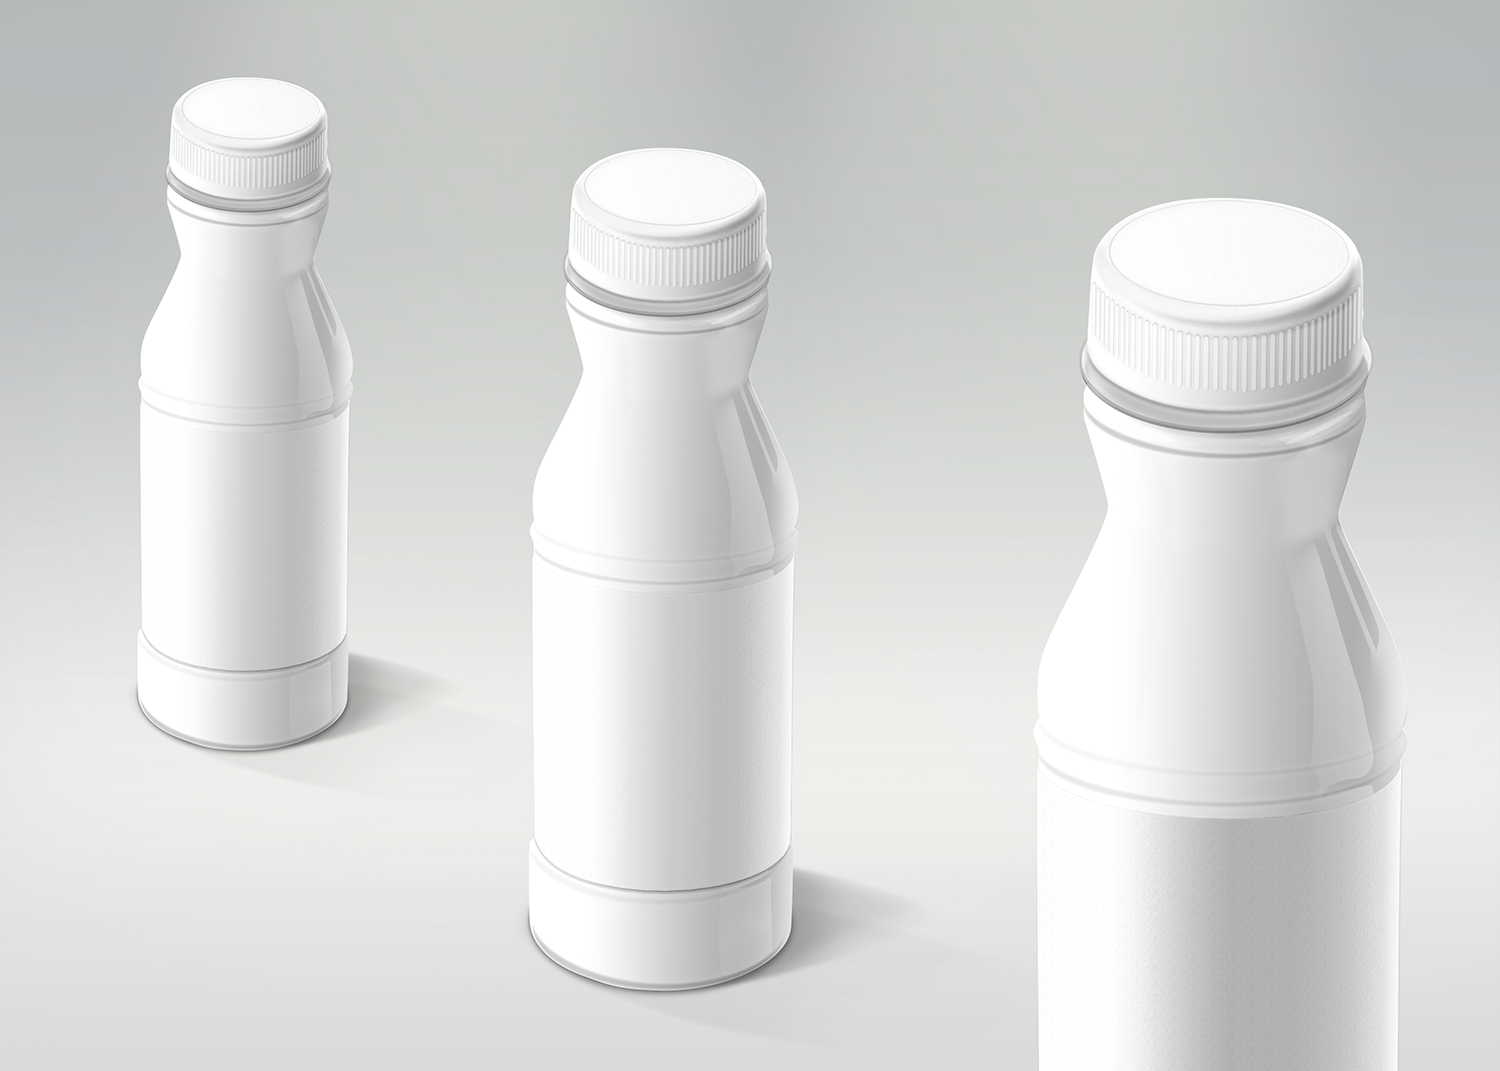 Multipurpose Plastic Bottle Mockup